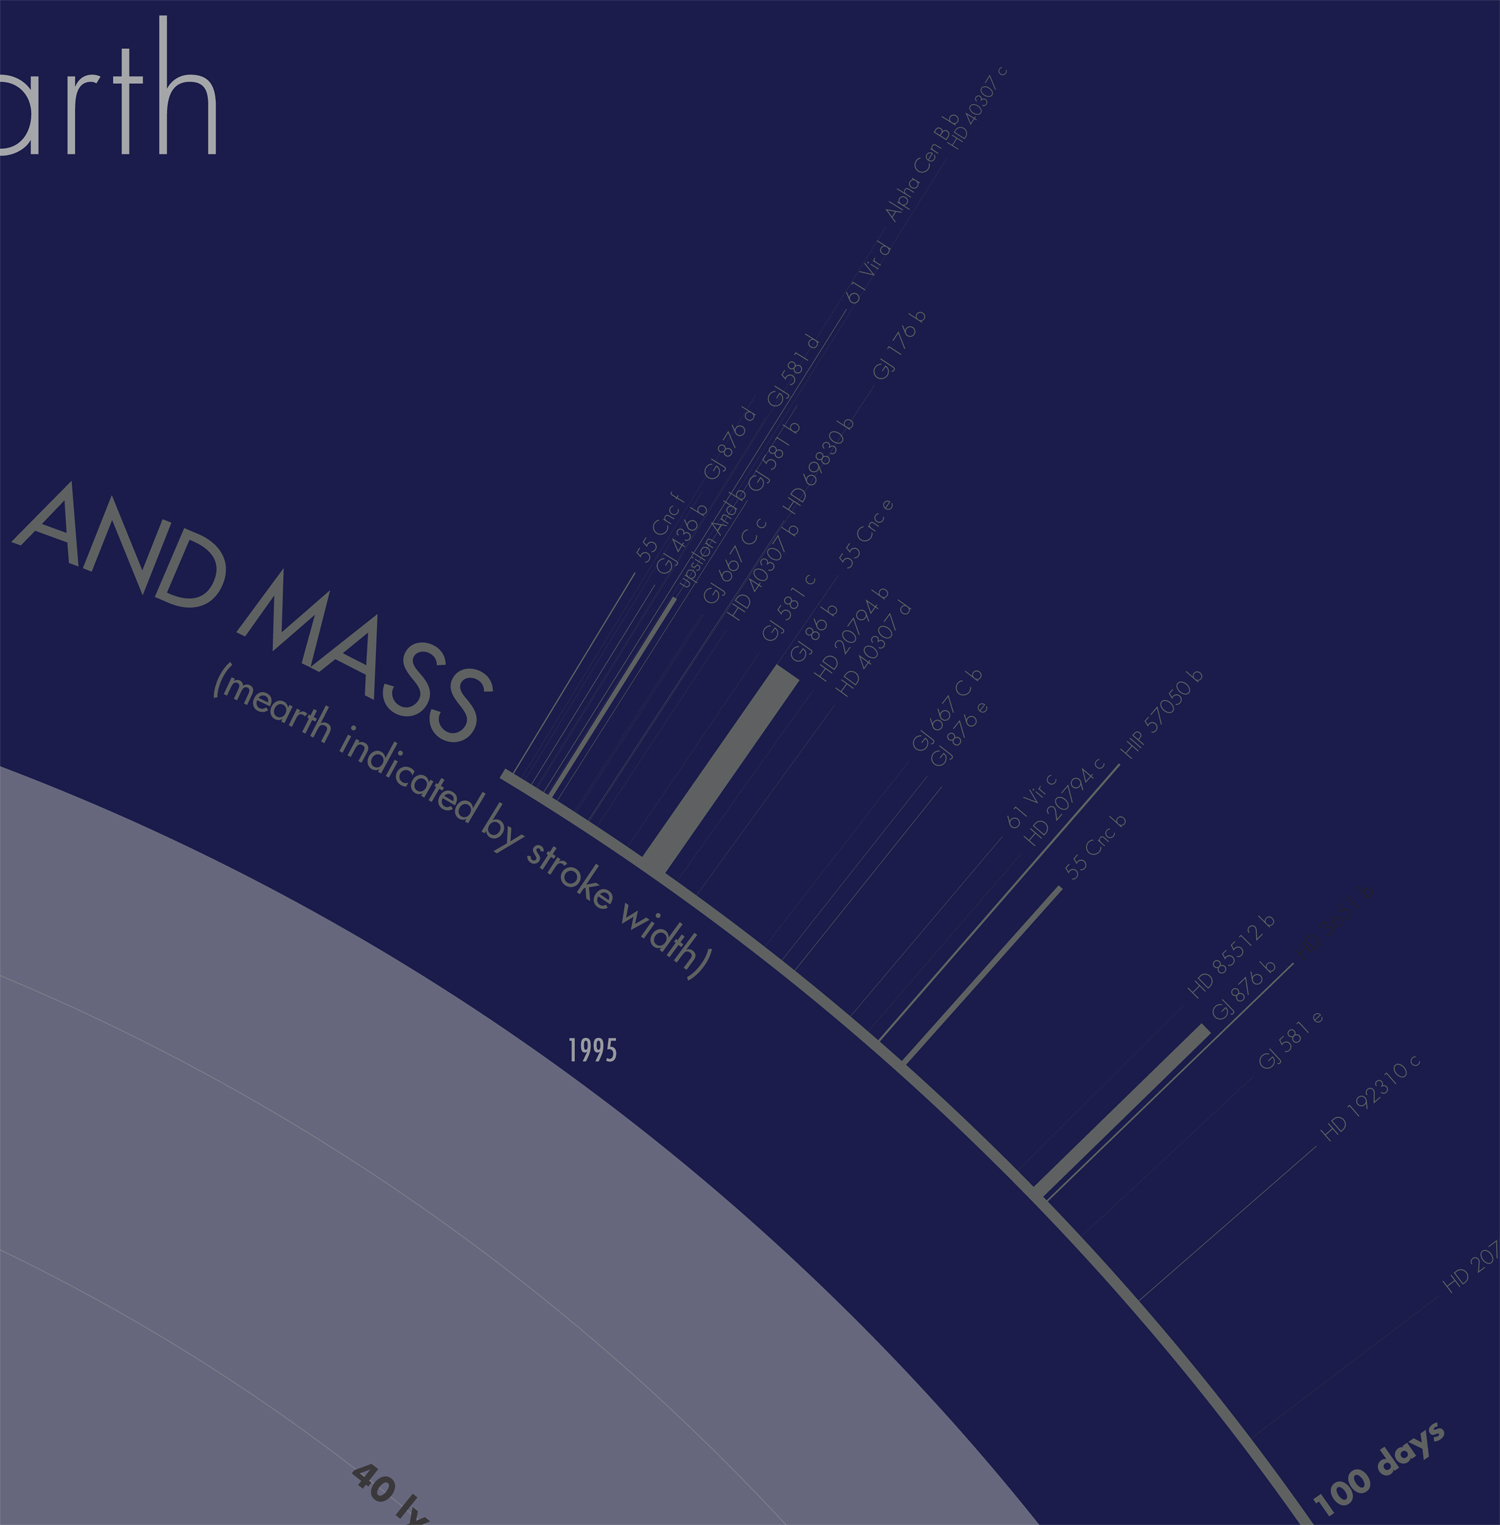 Exoplanets_ProjectPage_4.jpg